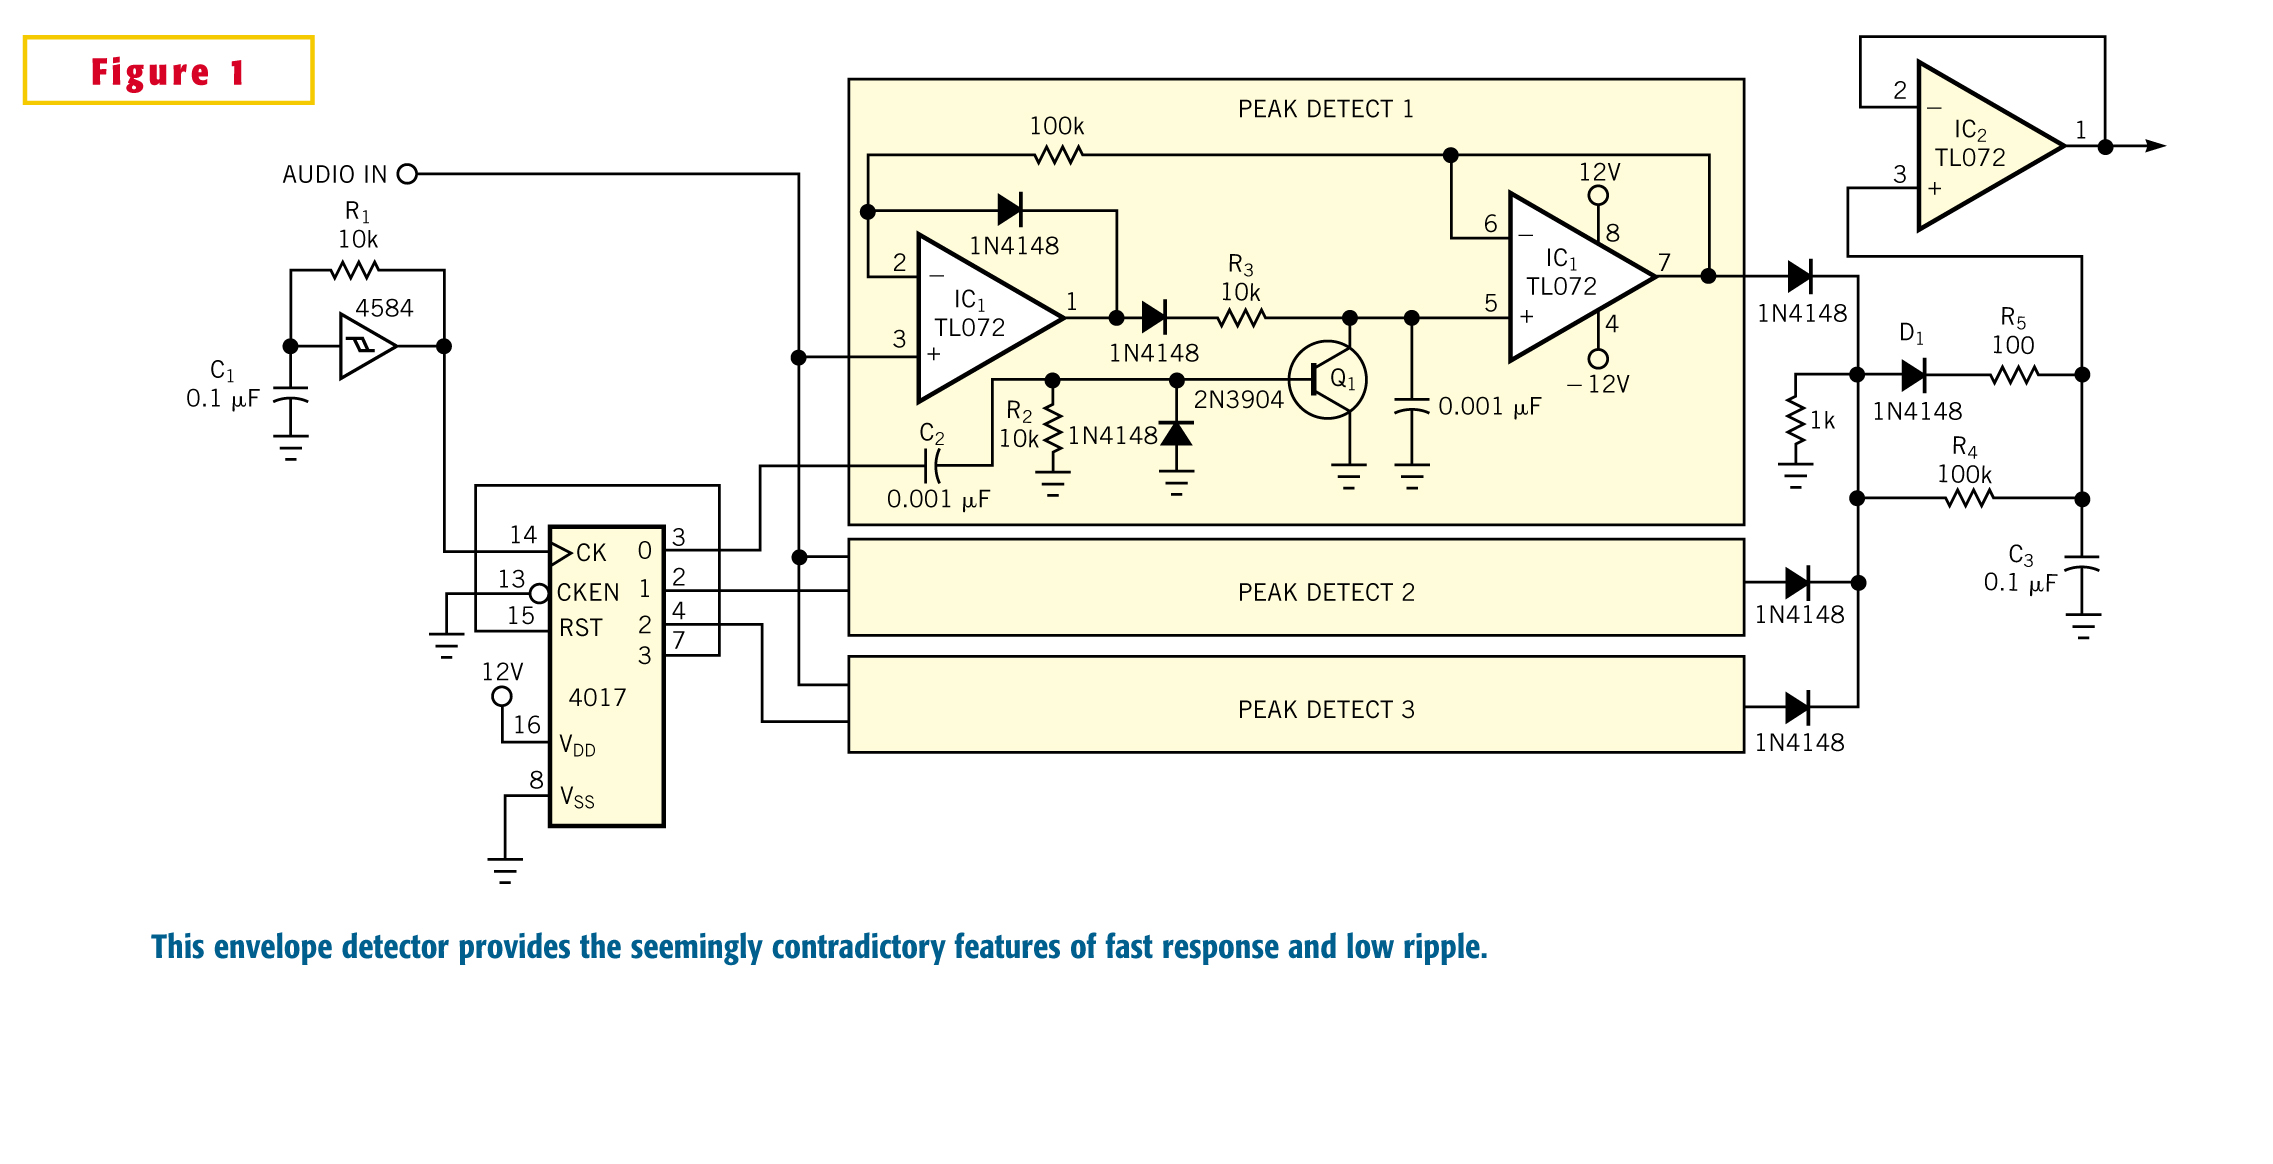 Discussion Rules For Drawing Readable Schematics Page 3 Simple Circuit Project Ideas Http Wwwelectrotechonlinecom Then Trade Magazines Always Had Good Illustrators Circuits But Often Left Out Important Details Simplicity And Ease Of Reading